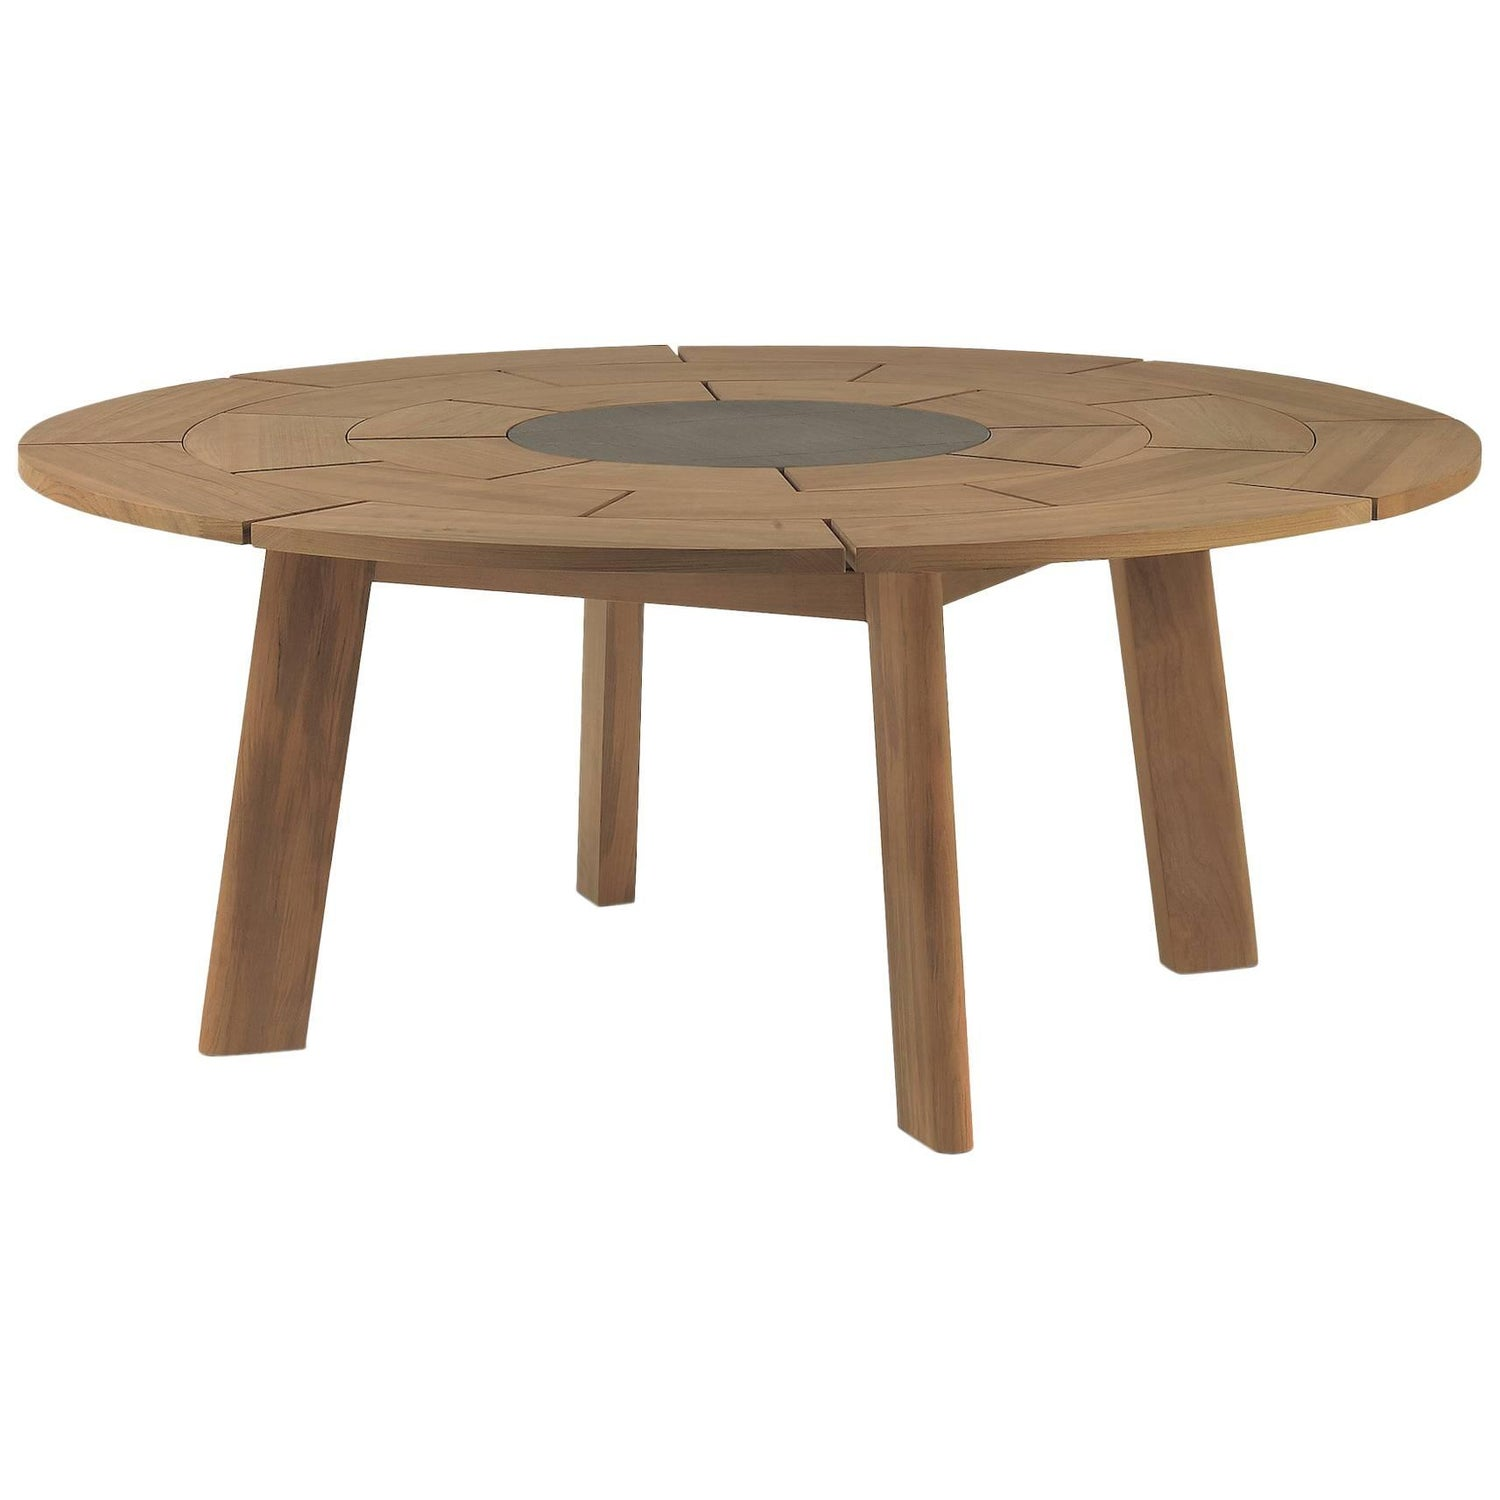 Outdoor round dining table - Roda Brick Round Outdoor Dining Table For Eight People With Stone Centre